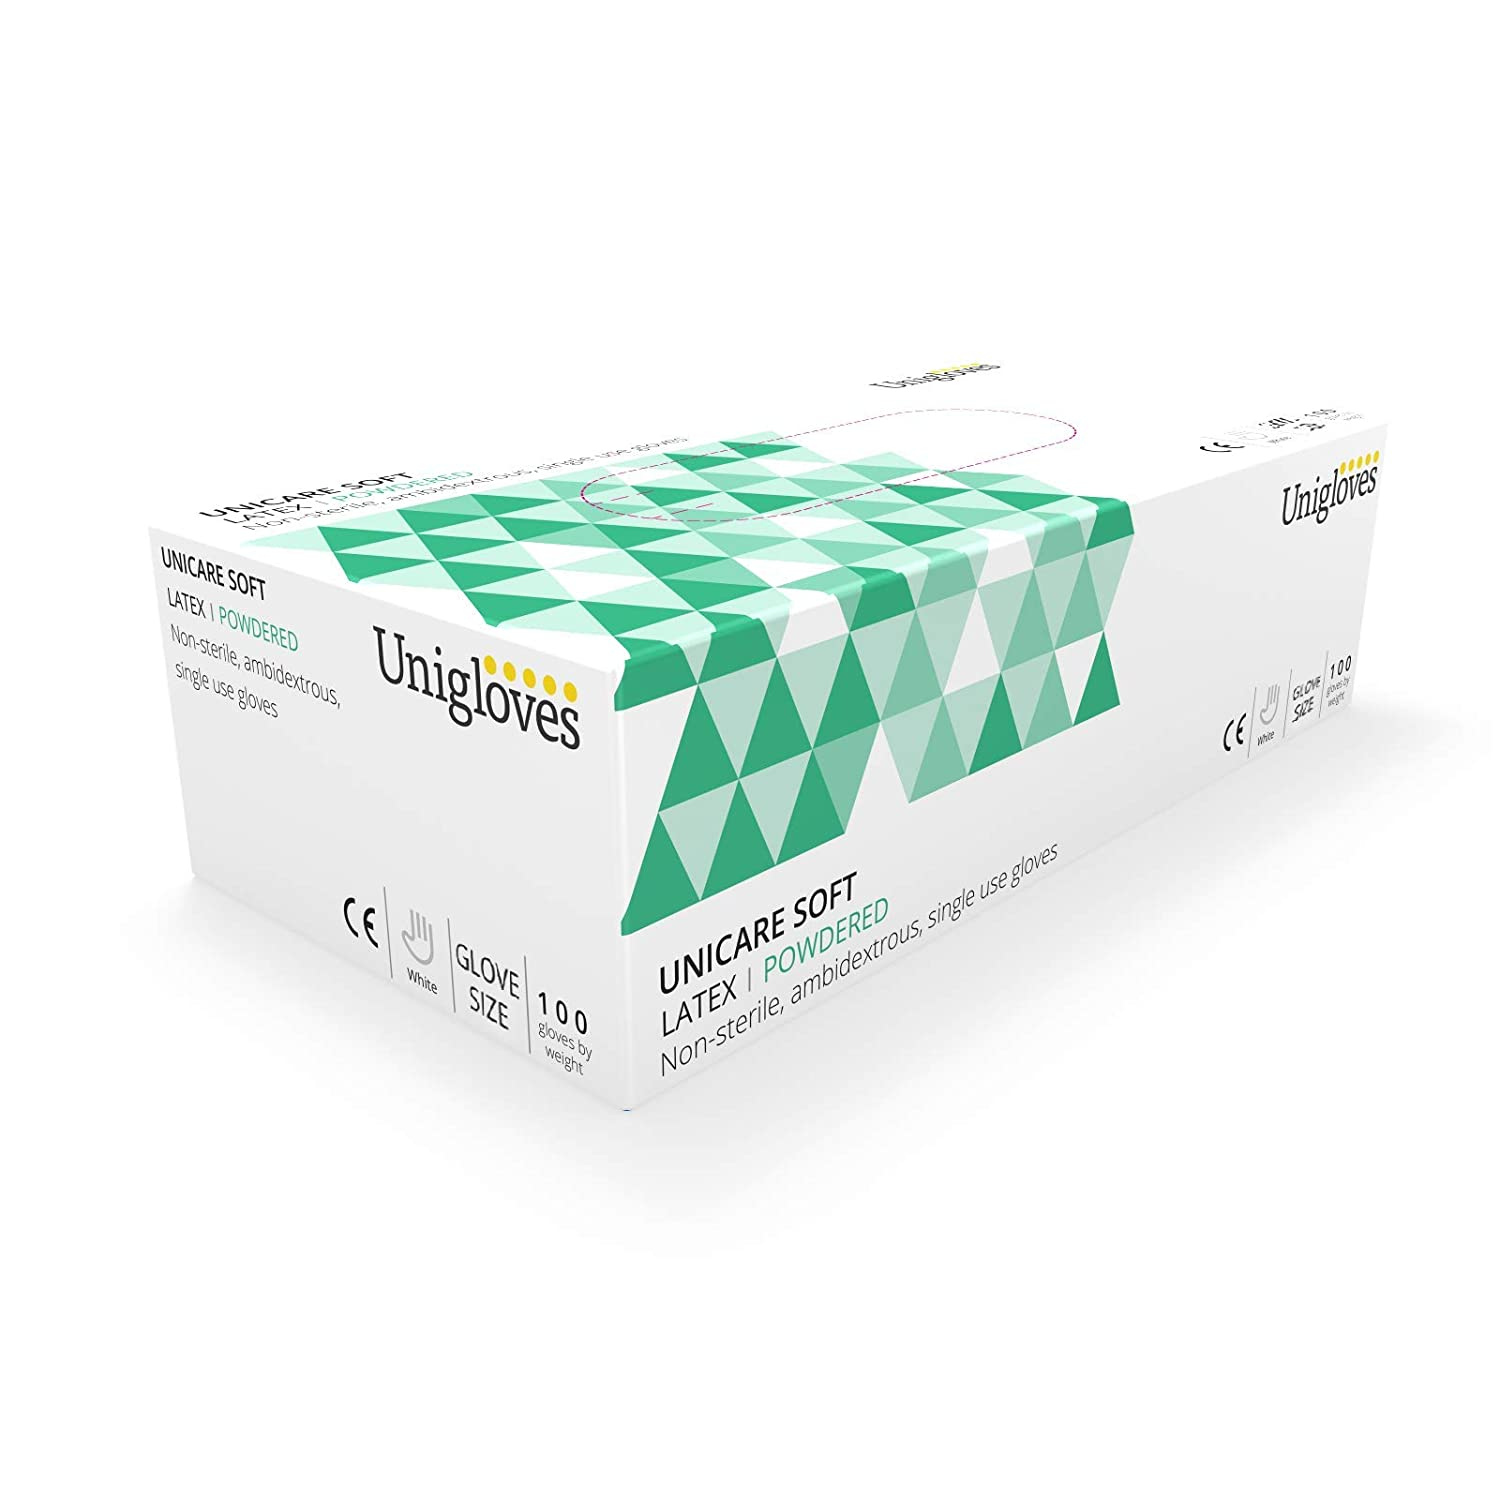 Unigloves UCL1202 Small Latex Powdered Gloves (Box of 100)